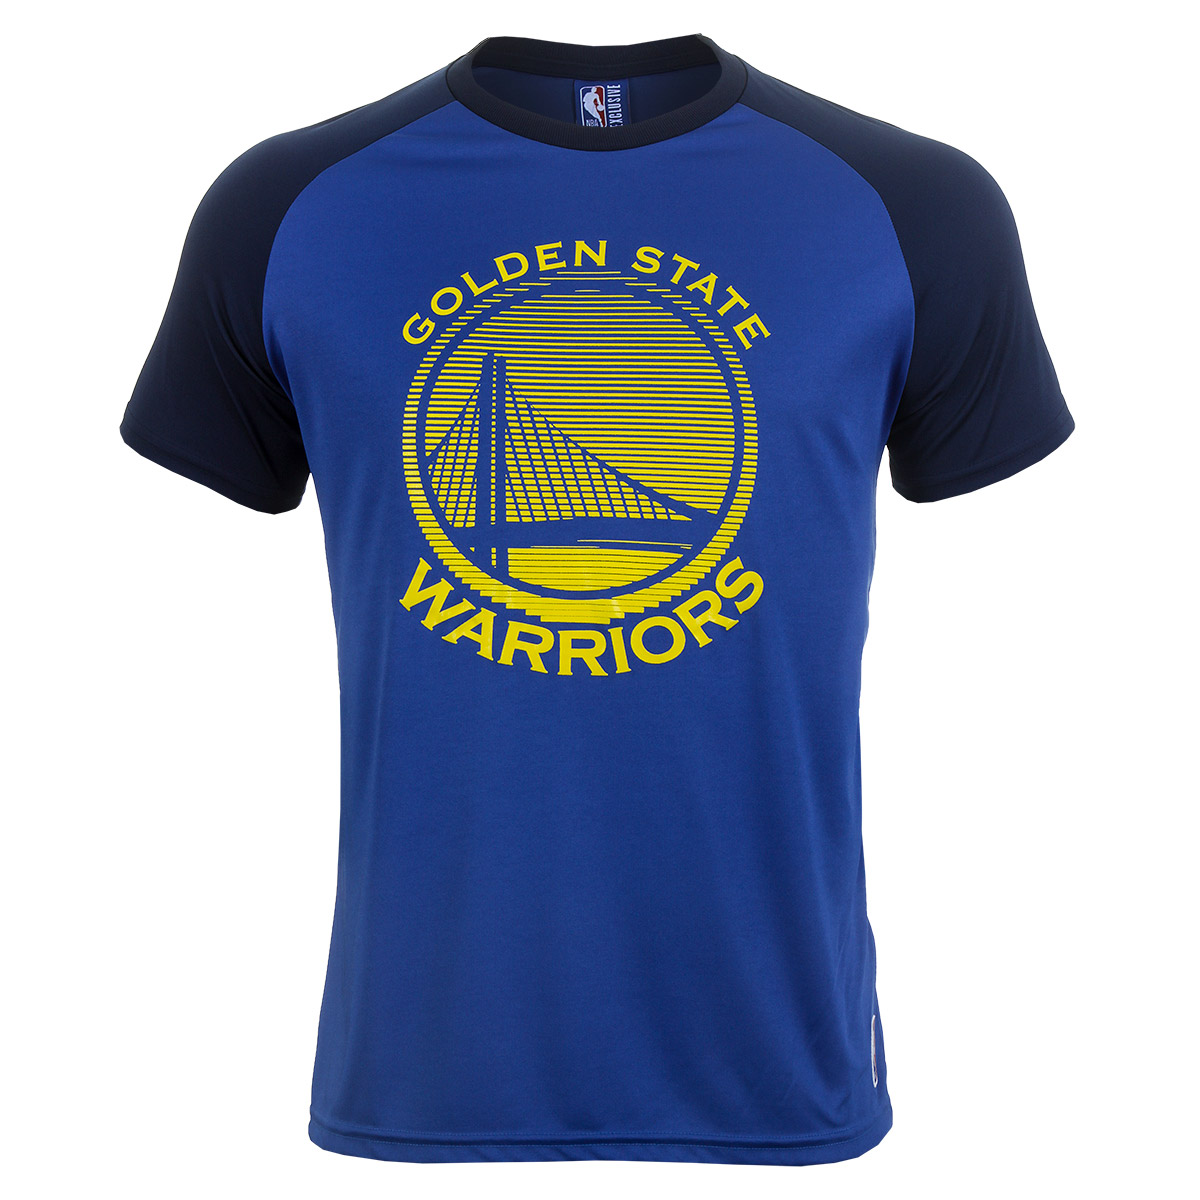 Camiseta Masc. Spr Golden State Warriors - Royal/Marinho